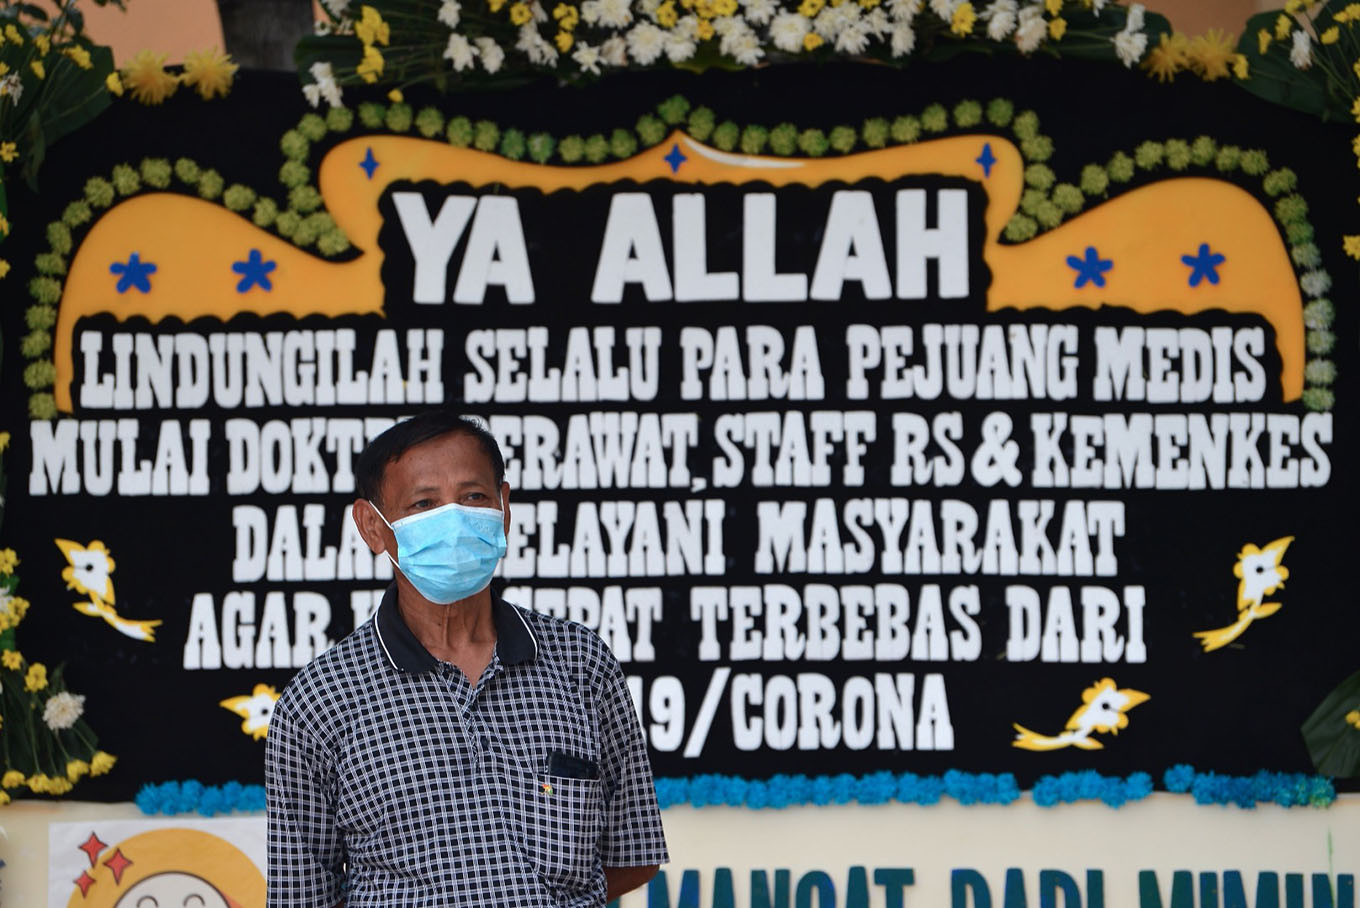 84 health workers, including two pregnant women, test positive for COVID-19 in Jakarta